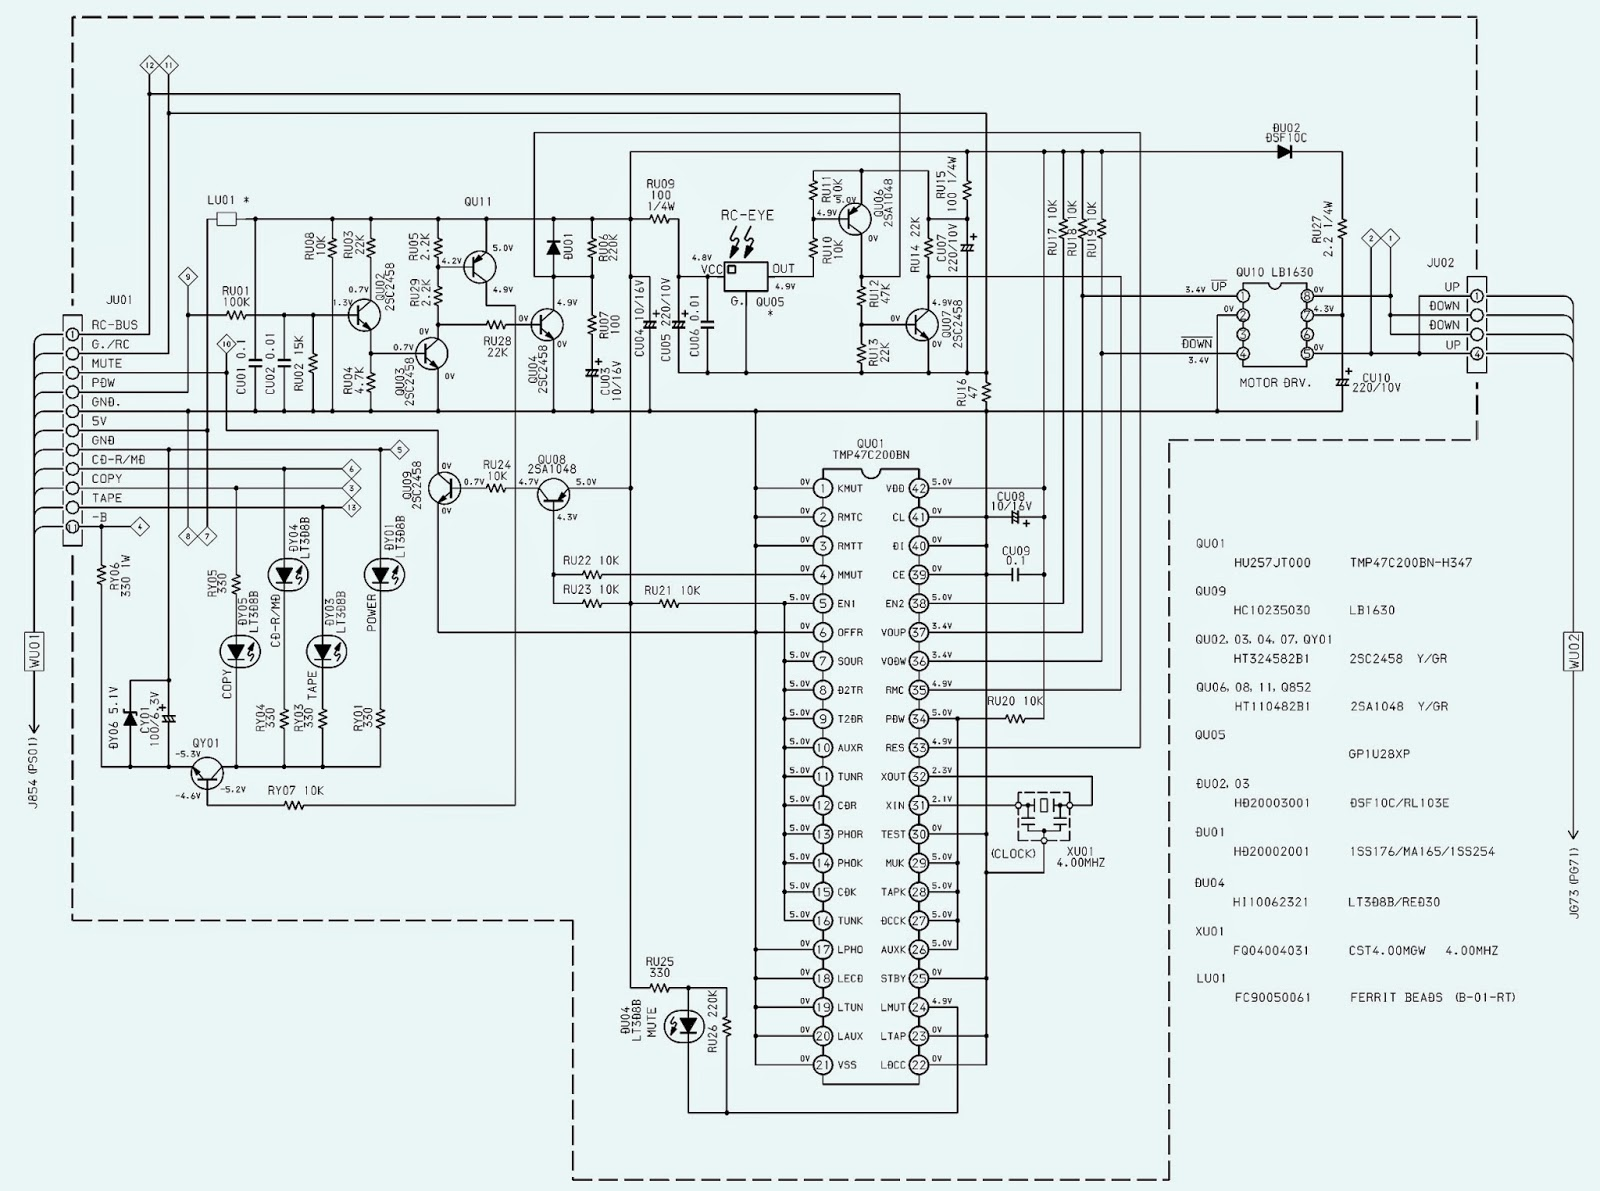 DIAGRAM] Vip Wiring Diagram Schematic FULL Version HD Quality Diagram  Schematic - 196617.ACCNET.FRRocker Switch Wire Diagram - accnet.fr